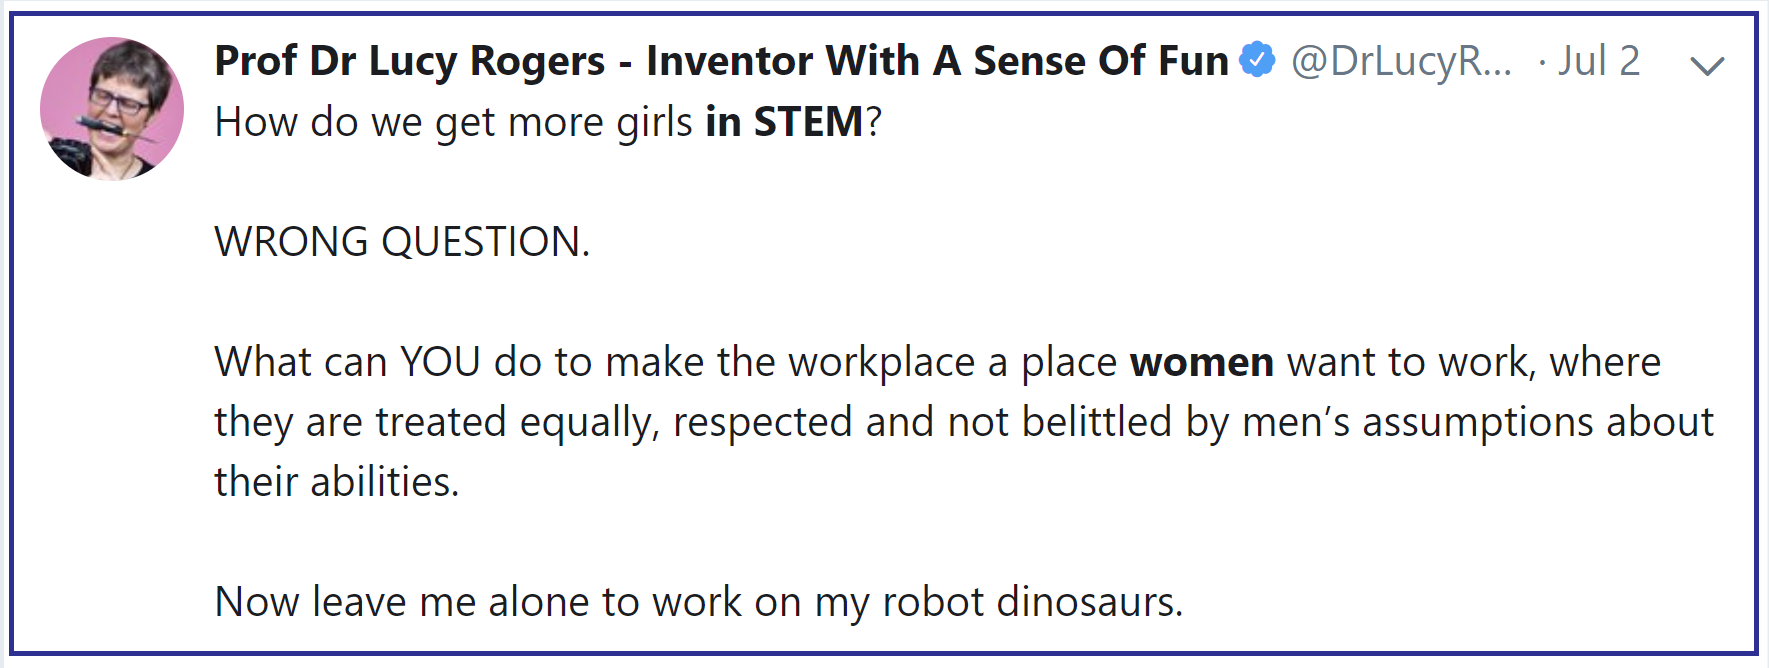 @DrLucyRogers, 2 July 2019 tweet: ...Girls in STEM? WRONG QUESTION. What can YOU do to make the workplace a place that women want to work...